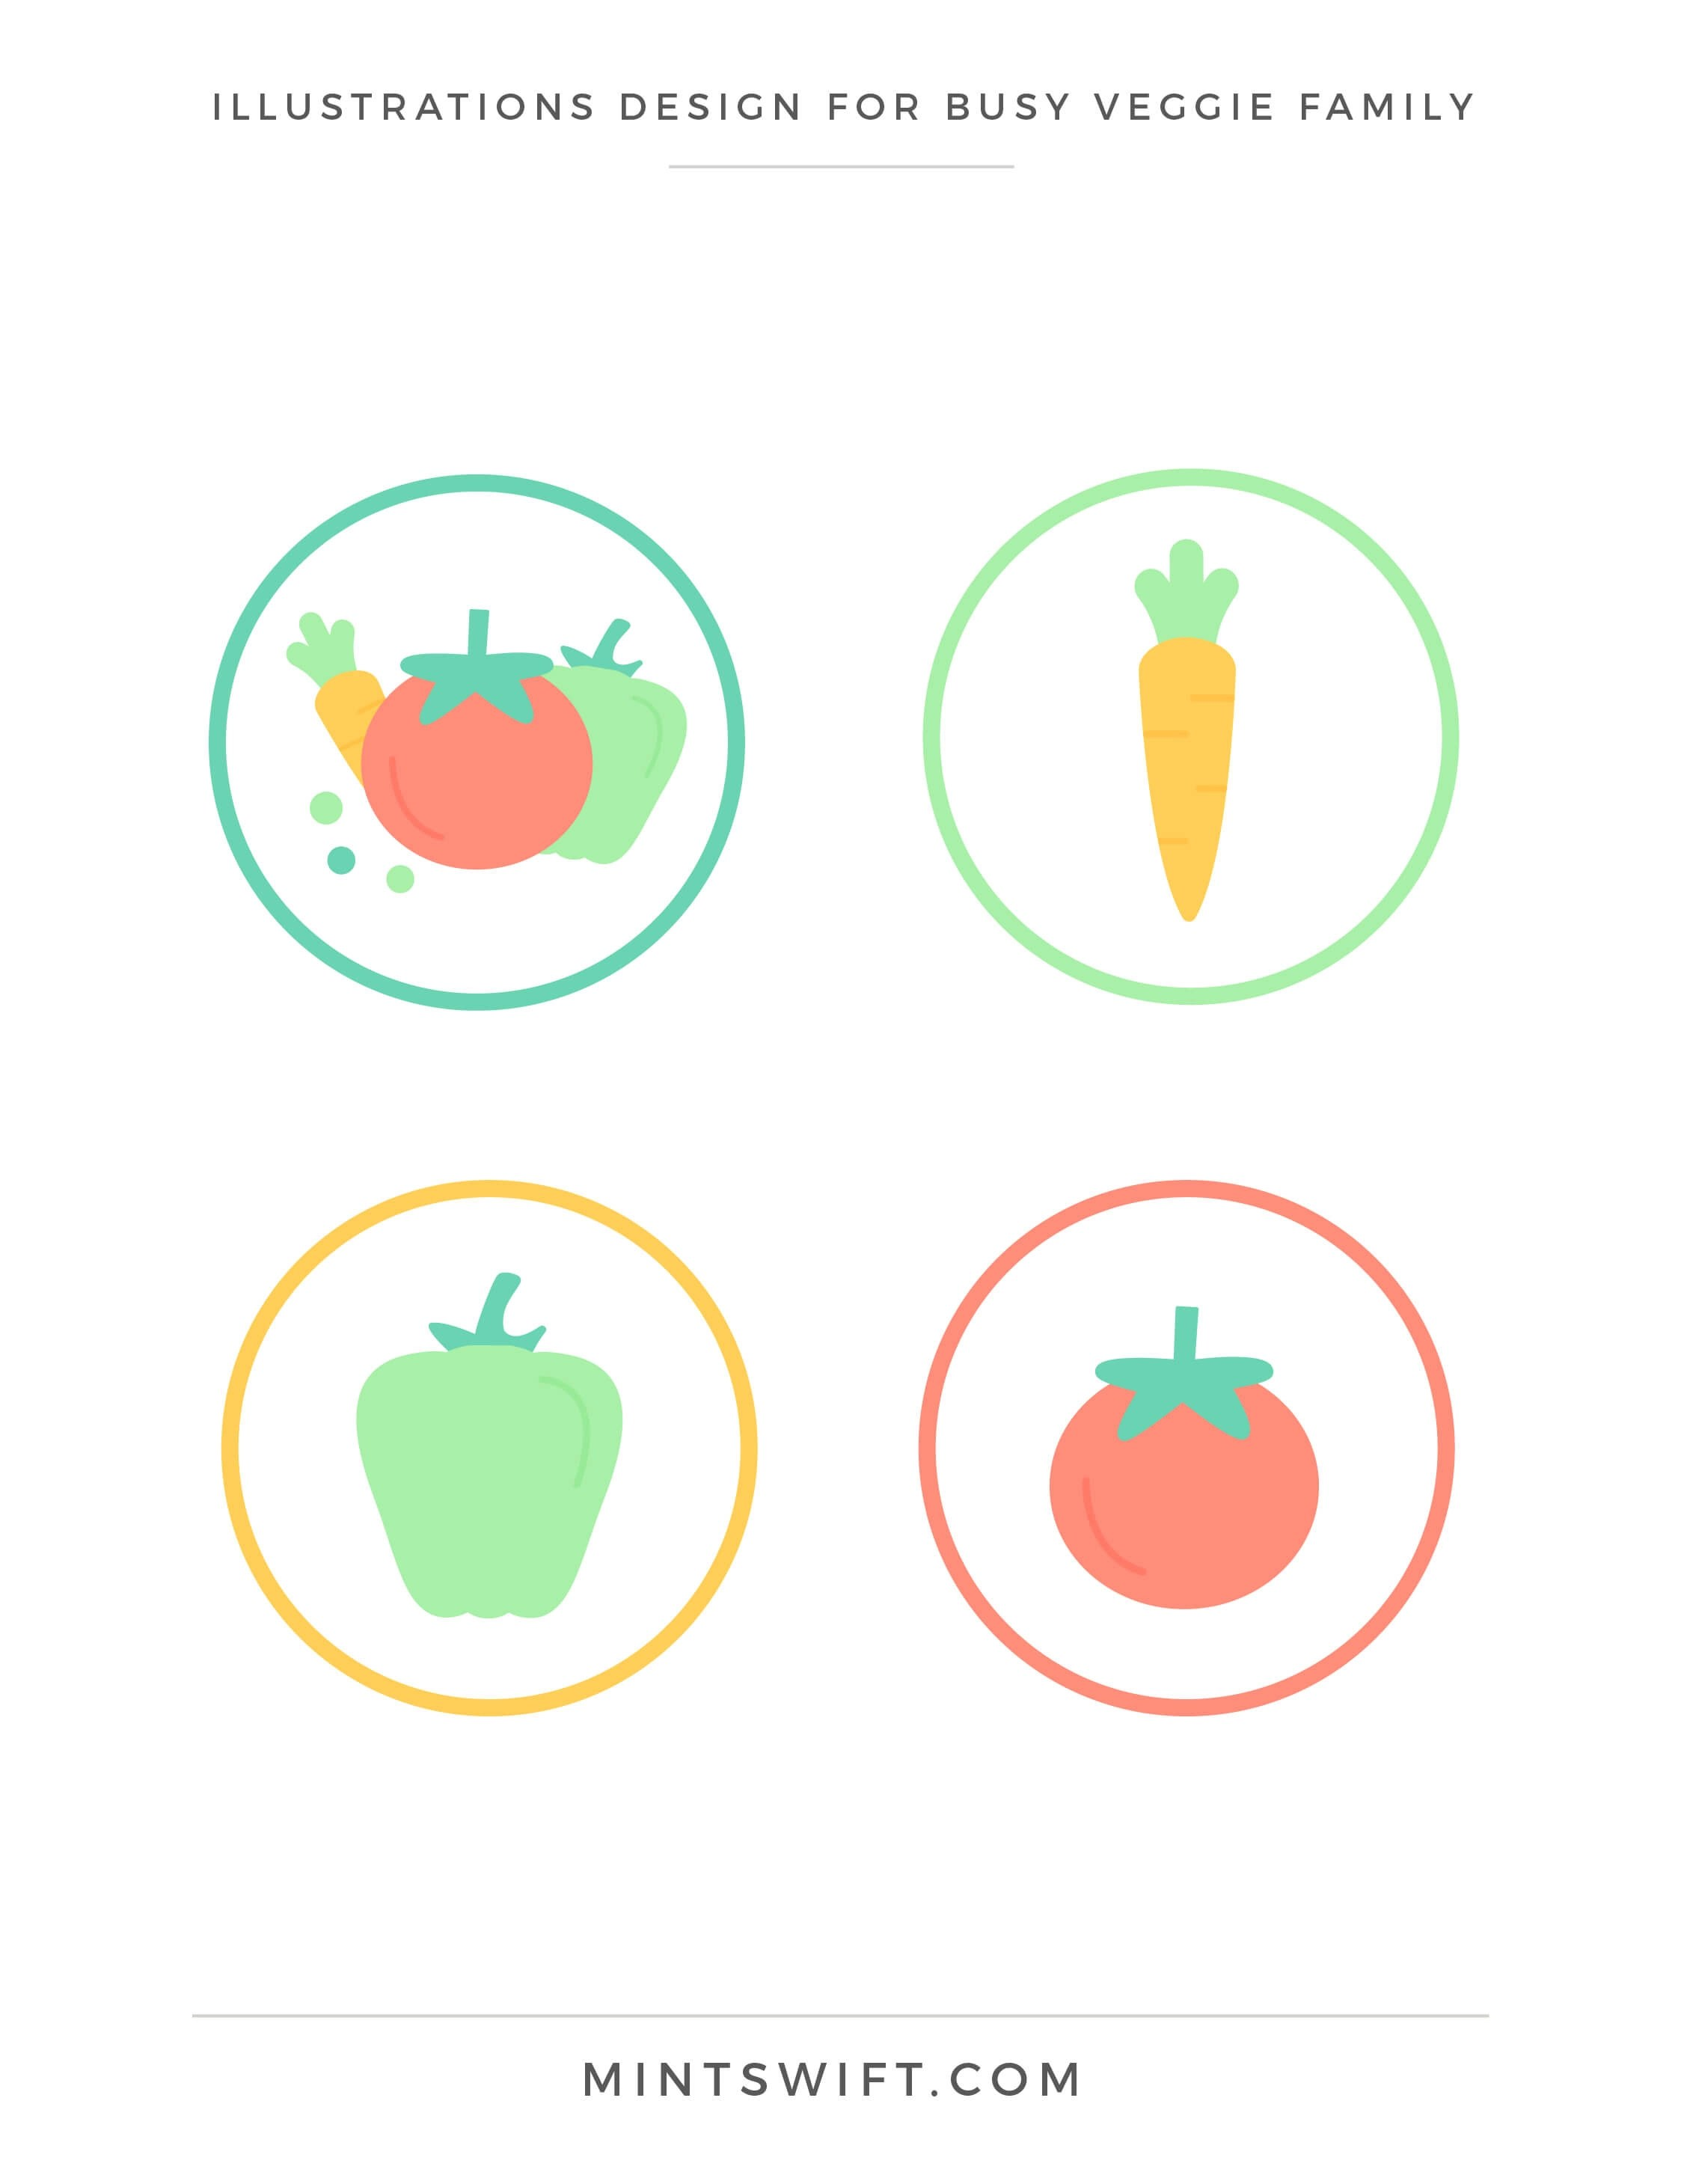 Busy Veggie Family - Illustrations Design - Brand & Website Design Package - MintSwift